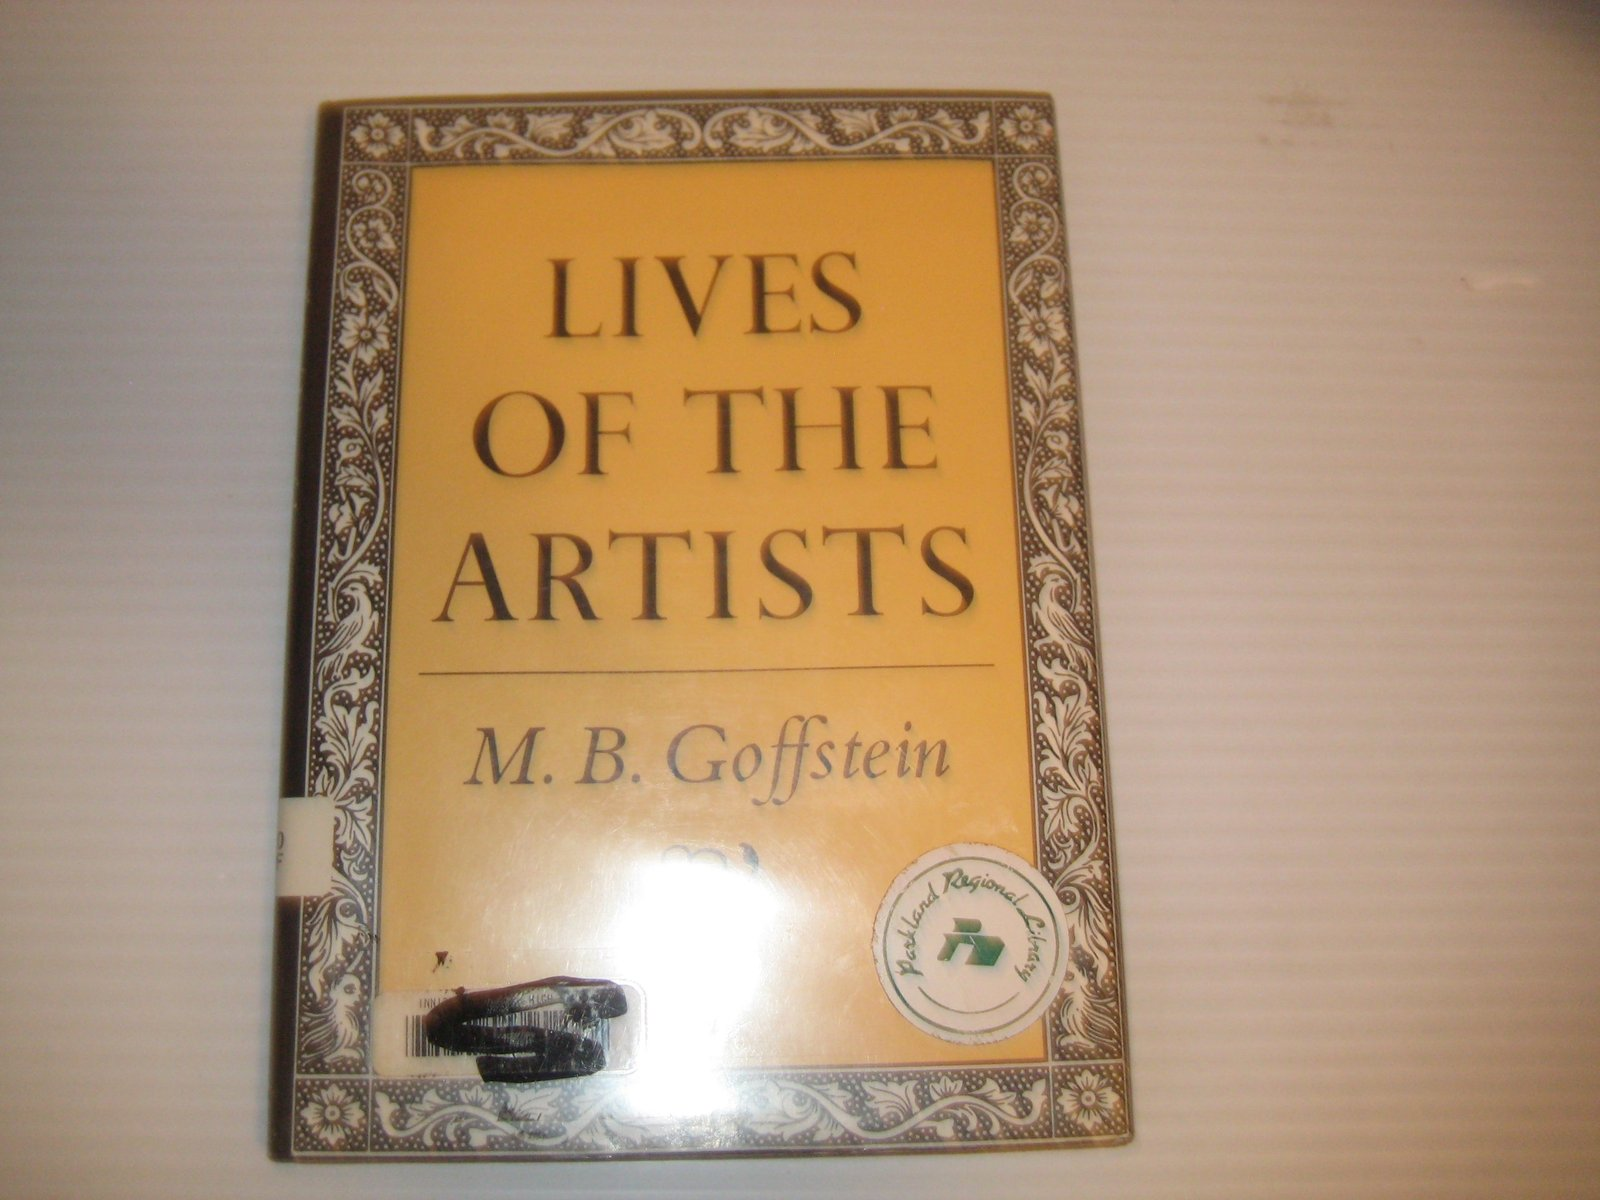 Lives of the Artists by Goffstein, M. B.